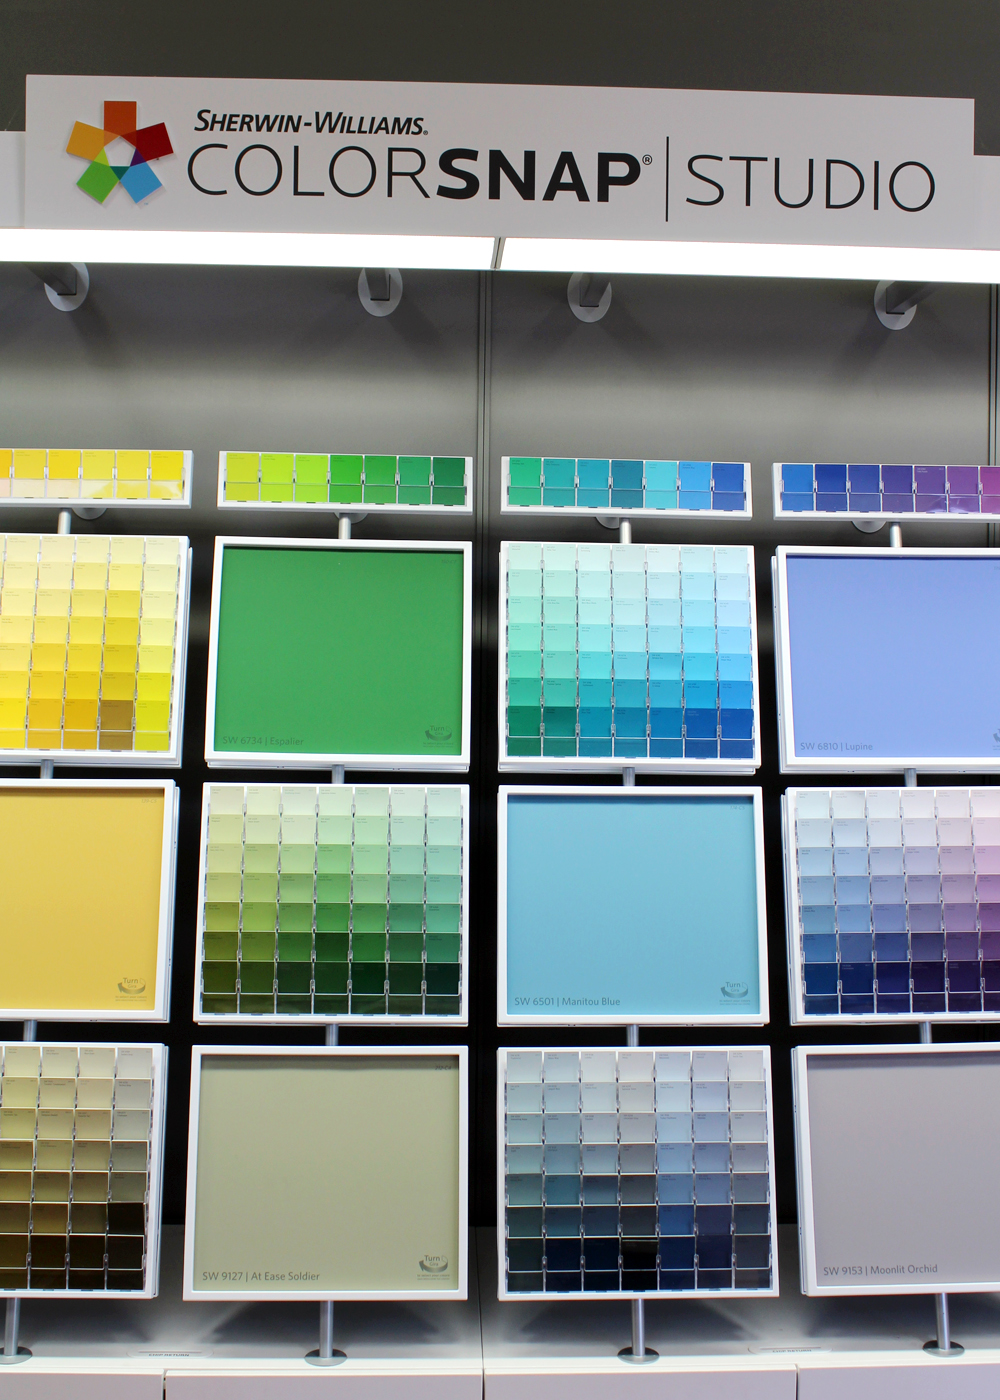 Sherwin-Williams in store ColorSnap Studio